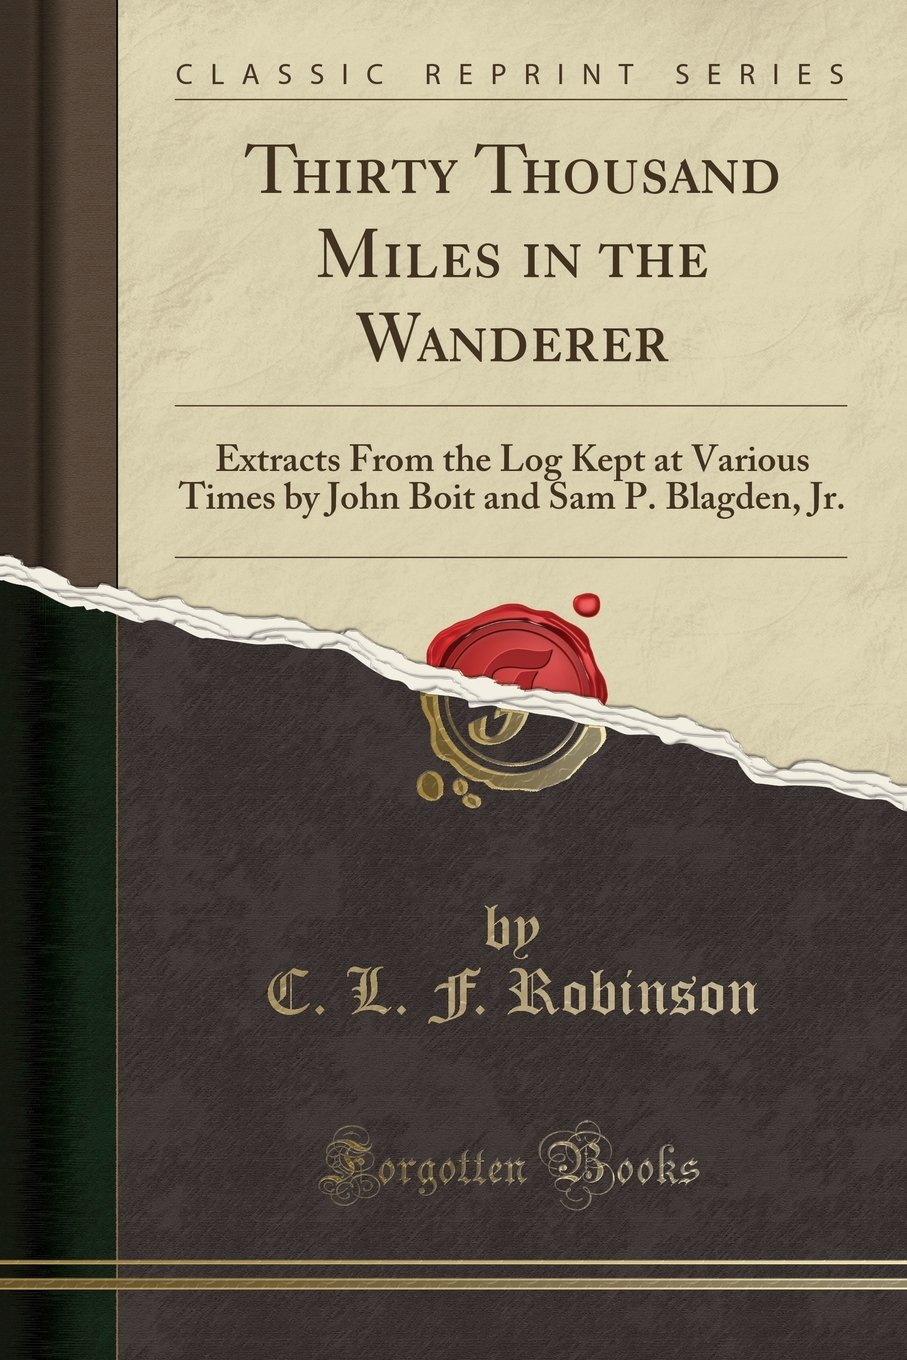 Thirty Thousand Miles in the Wanderer: Extracts From the Log Kept at Various Times by John Boit and Sam P. Blagden, Jr. (Classic Reprint) ebook